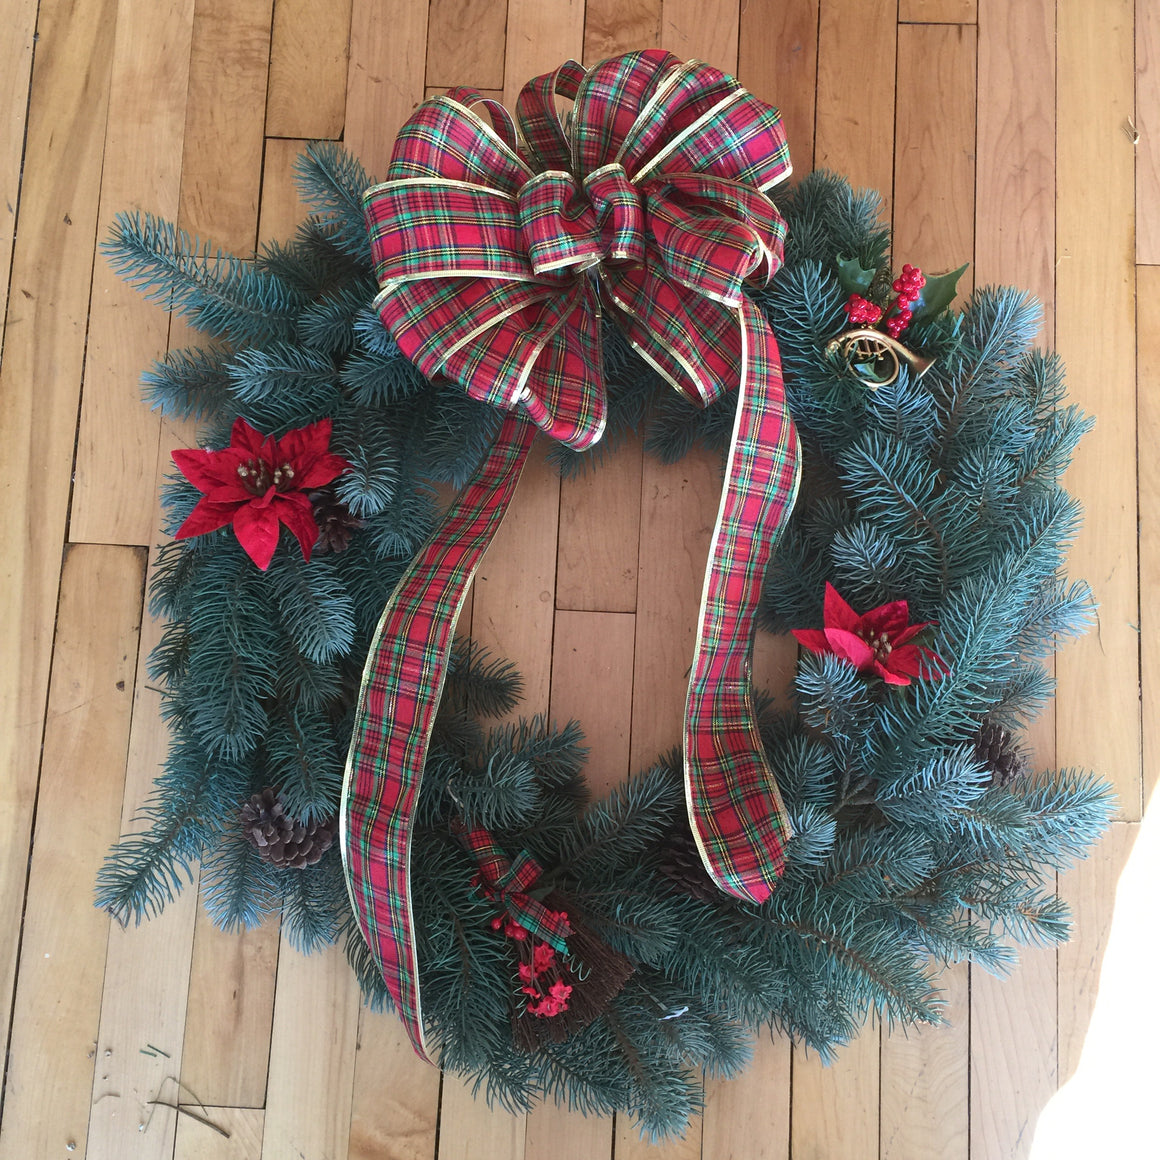 "Christmas Wreath - 24"" with Plaid Bow & Poinsettias"